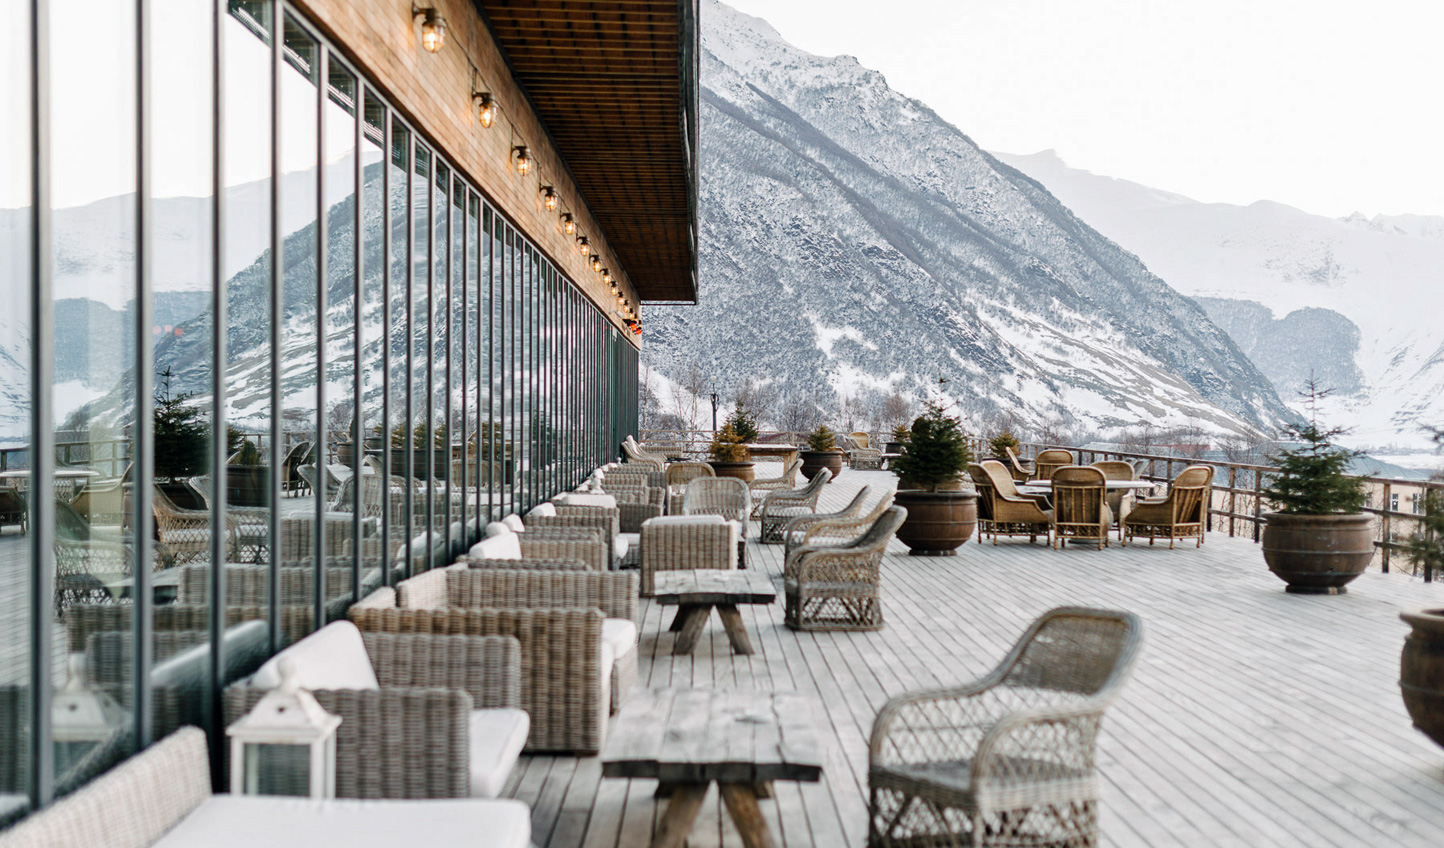 Swing by the terrace for apres-ski in winter and al-fresco lunch in summer